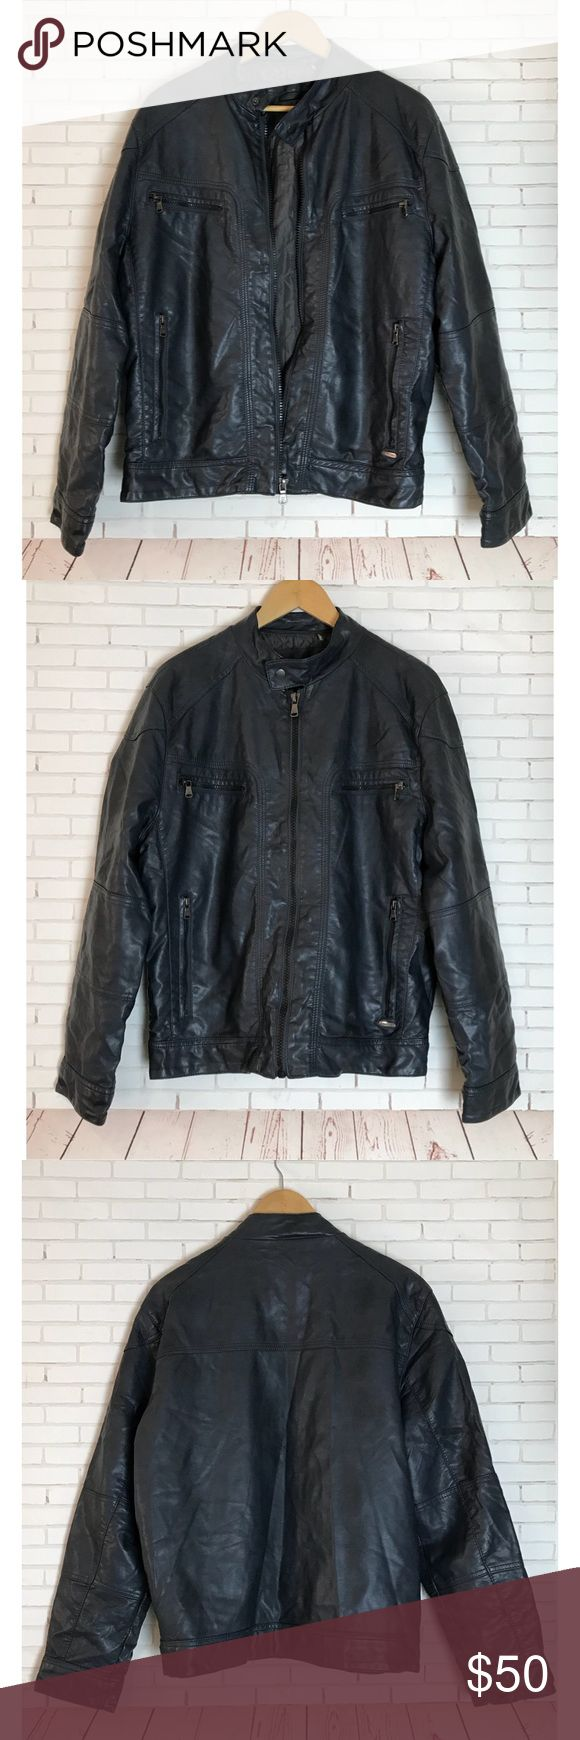 Calvin Klein Blue Faux Leather Size Men's Medium Calvin Klein blue faux leather jacket. Men's size Medium. Calvin Klein Jackets & Coats